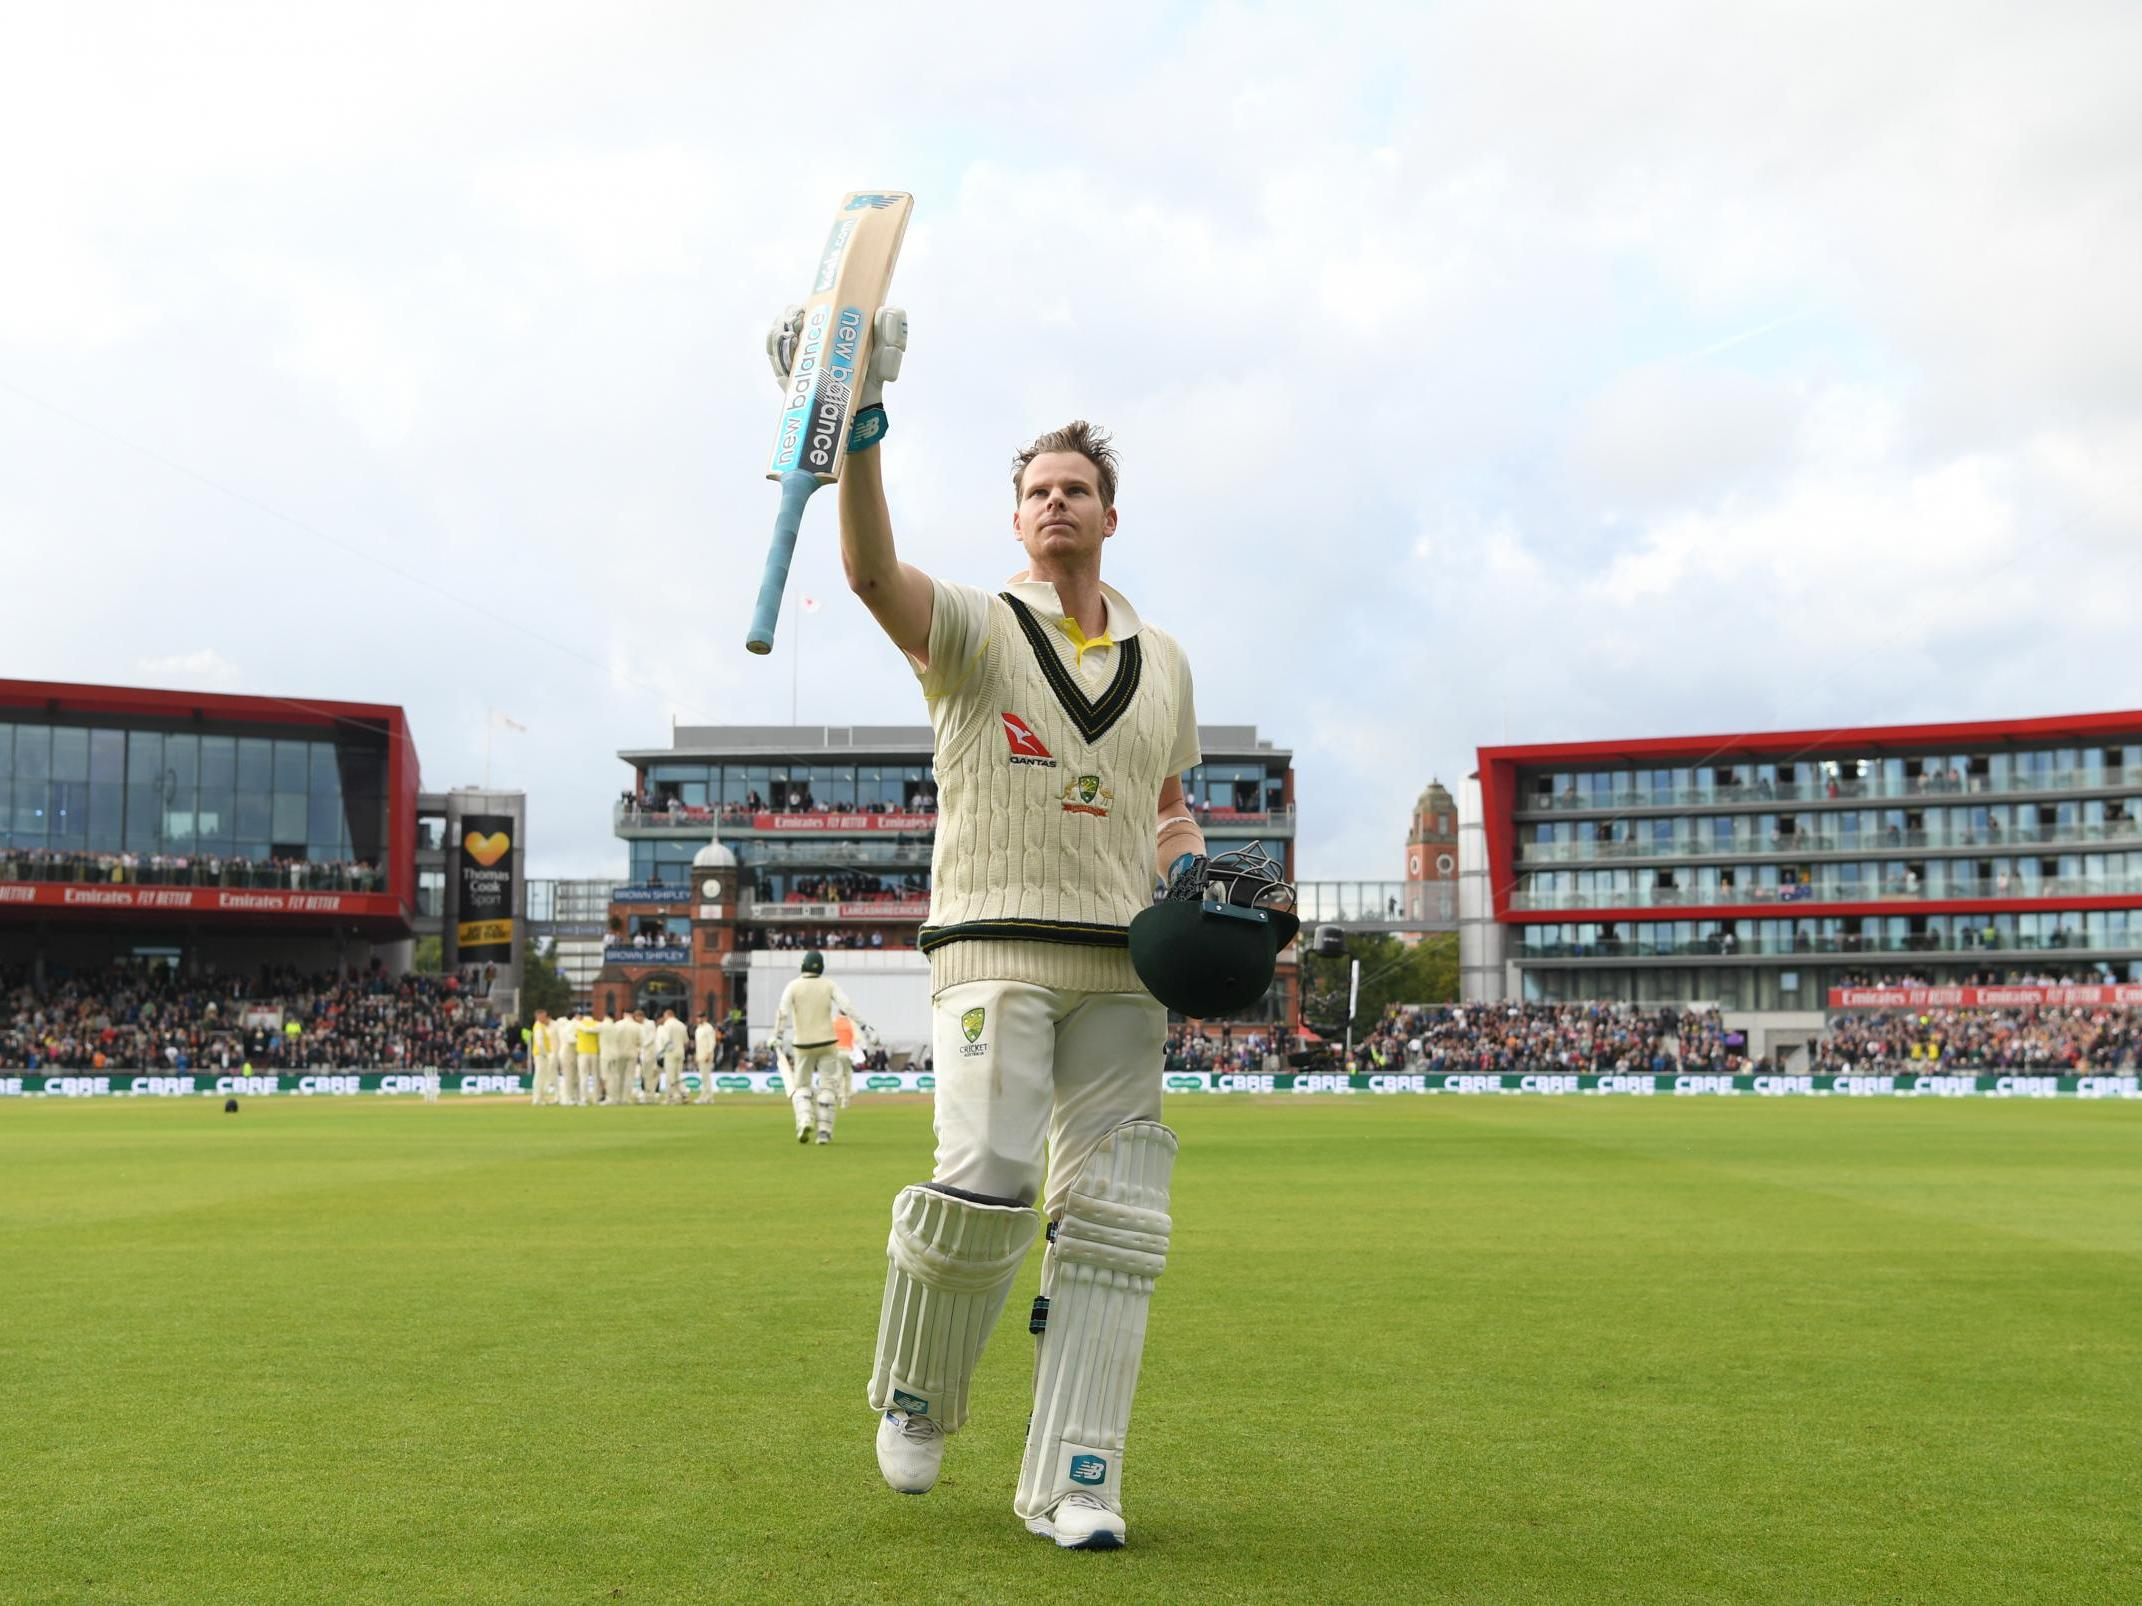 Joe Root - latest news, breaking stories and comment - The